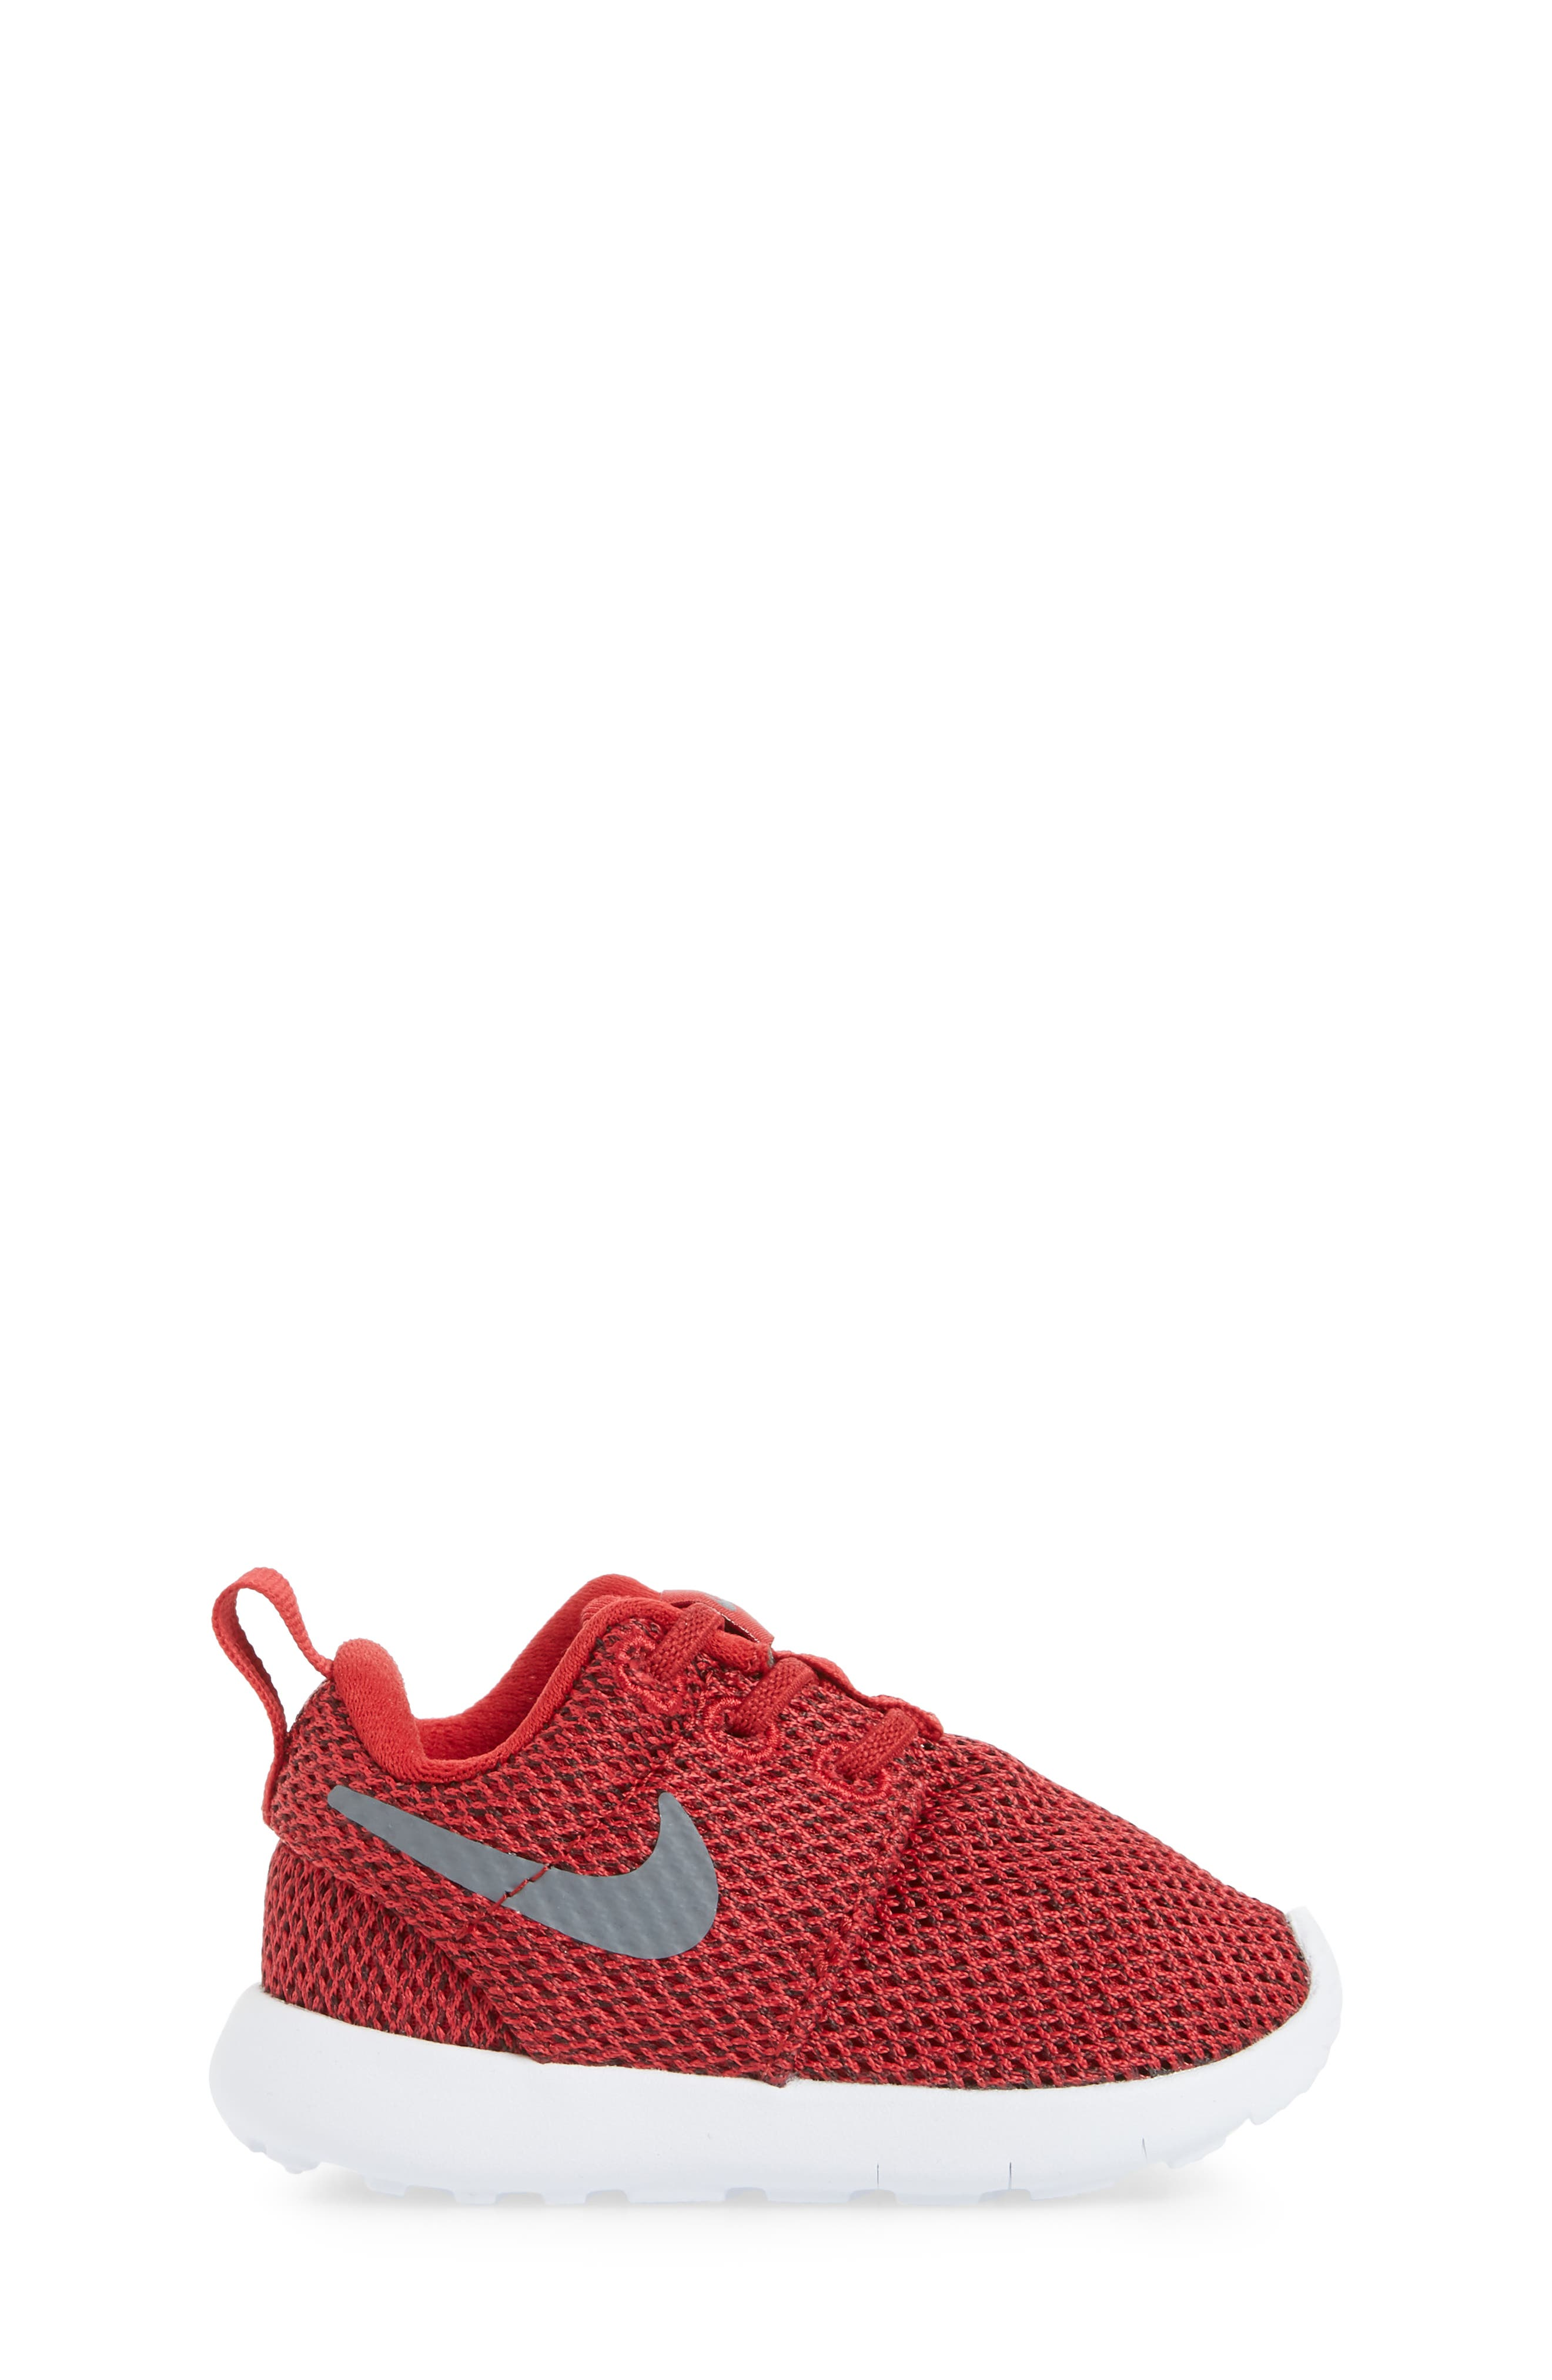 'Roshe Run' Sneaker,                             Alternate thumbnail 3, color,                             Gym Red/ Cool Grey/ Anthracite